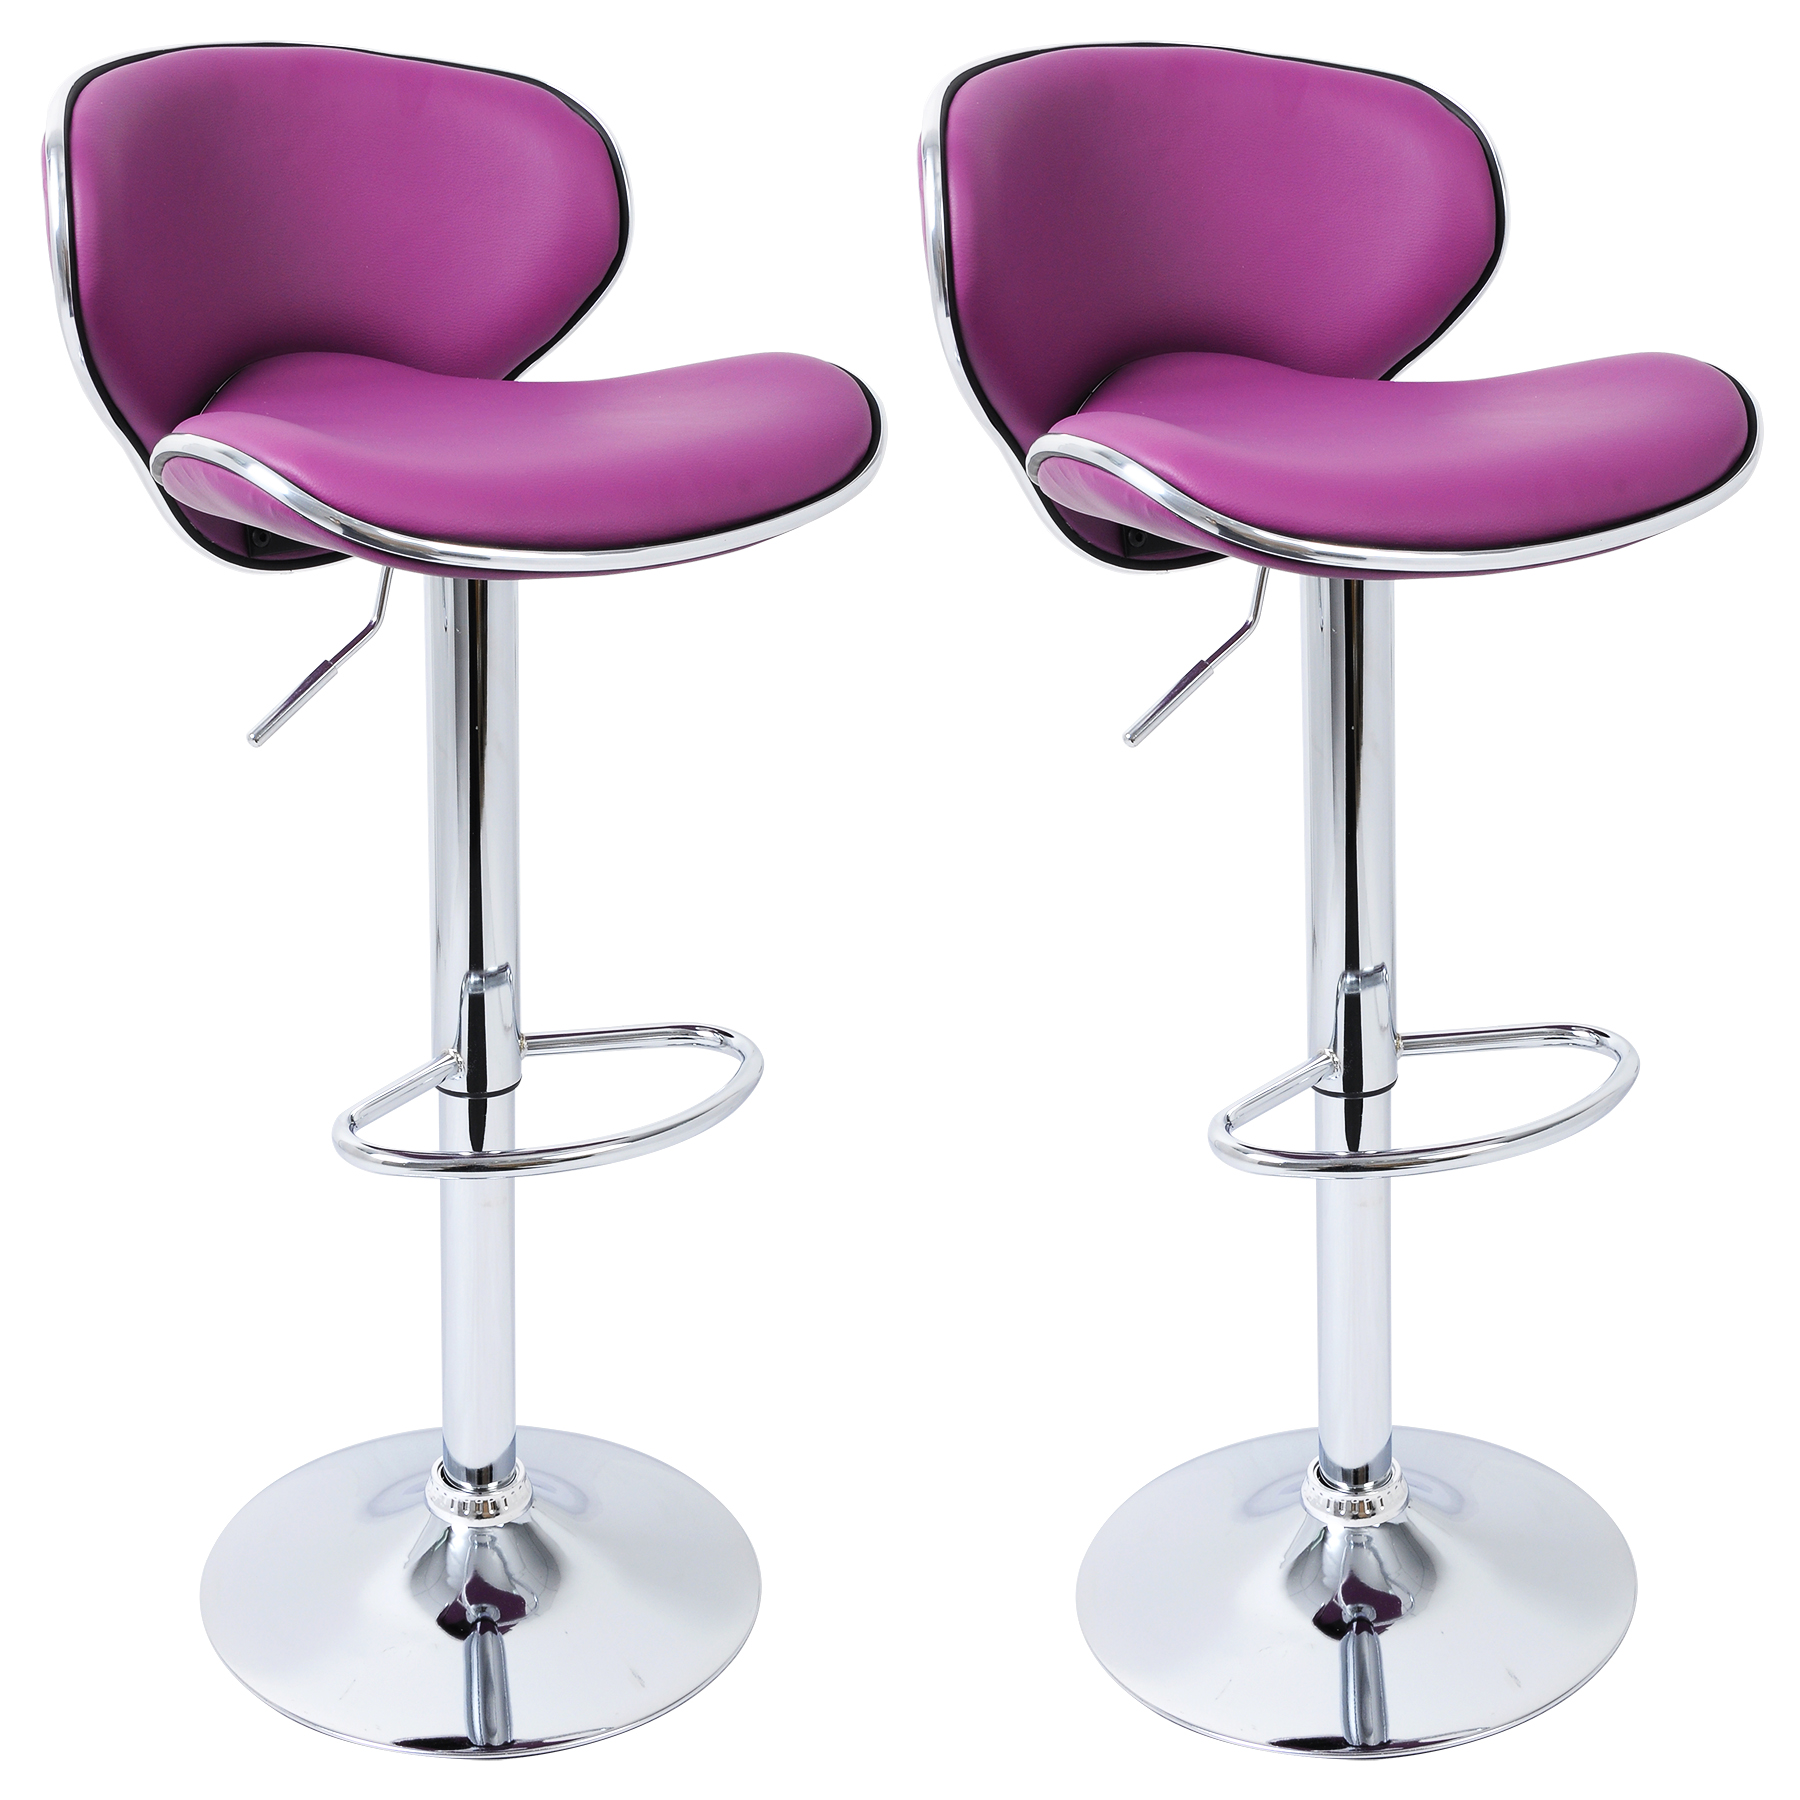 2 X Bar Stools Faux Leather Swivel Breakfast Kitchen Stool